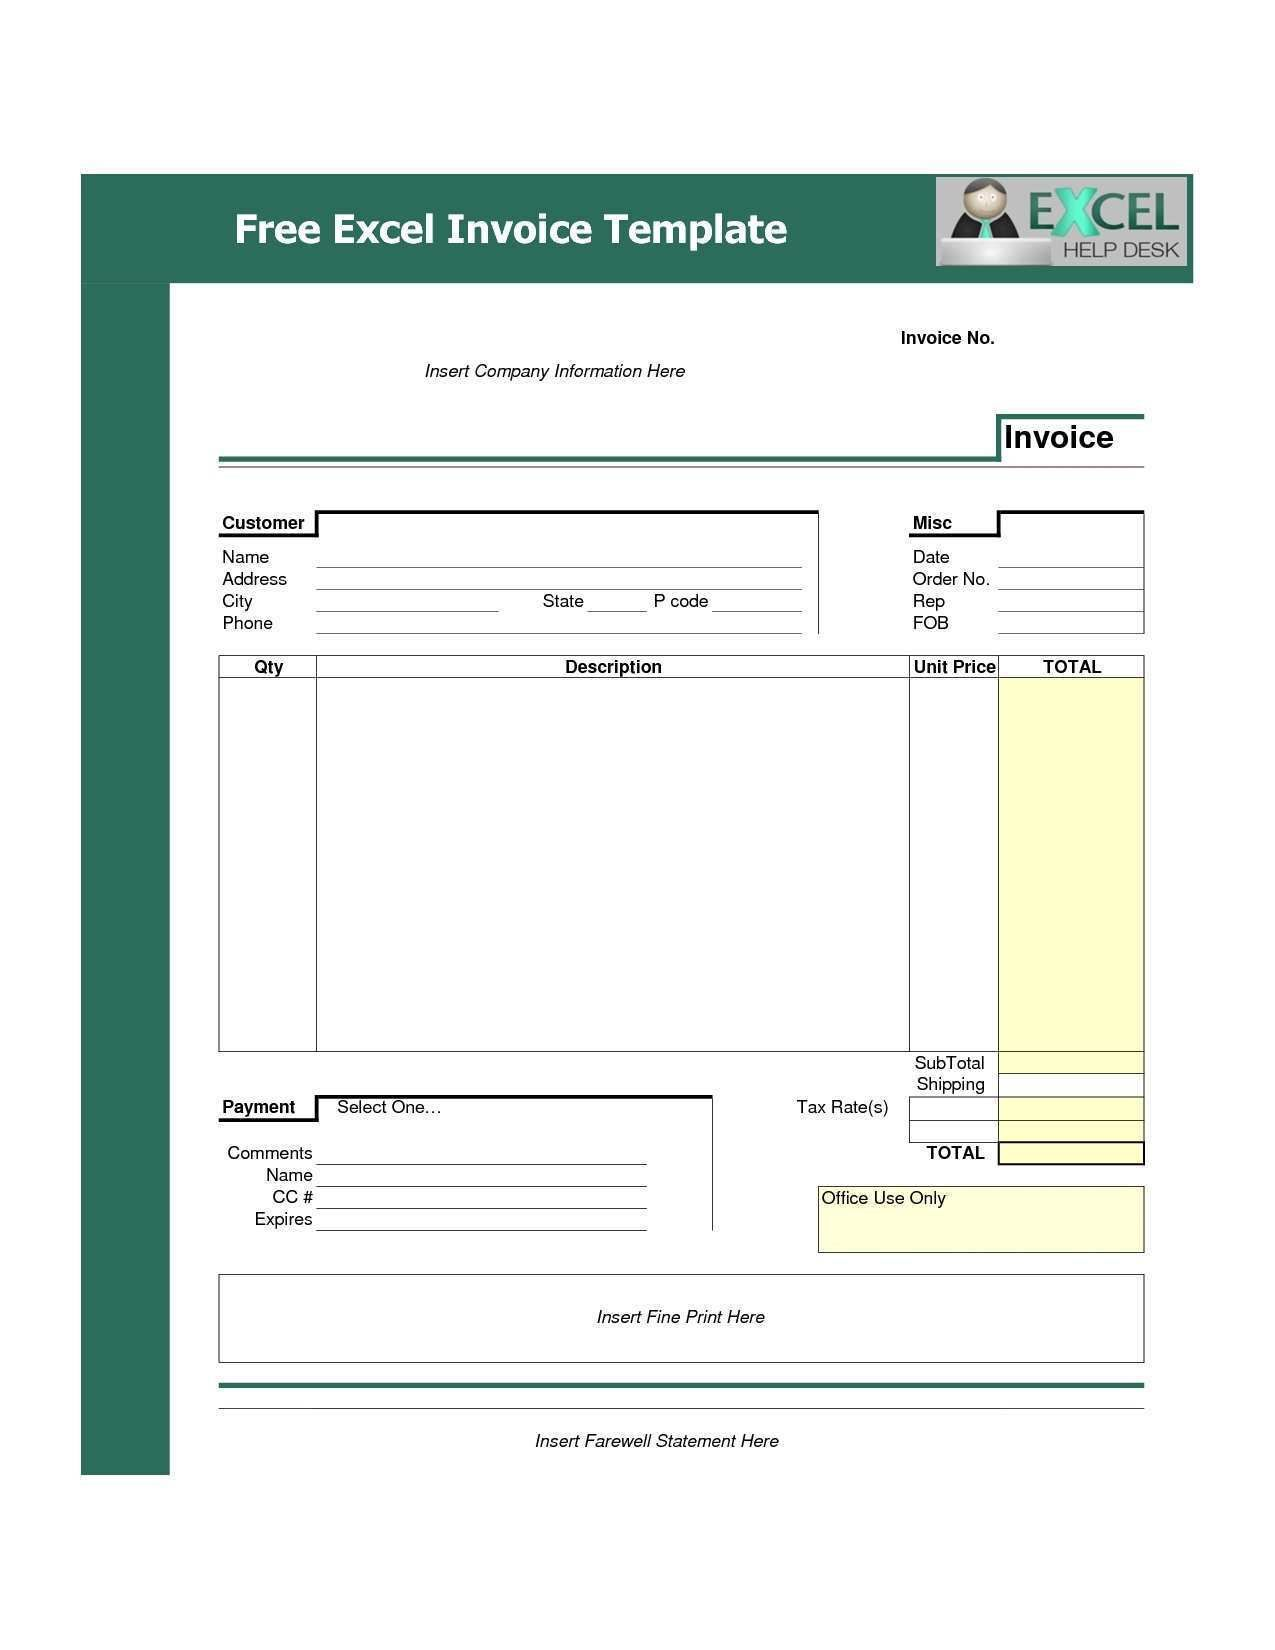 000 Phenomenal Free Tax Invoice Template Excel South Africa High Definition Full